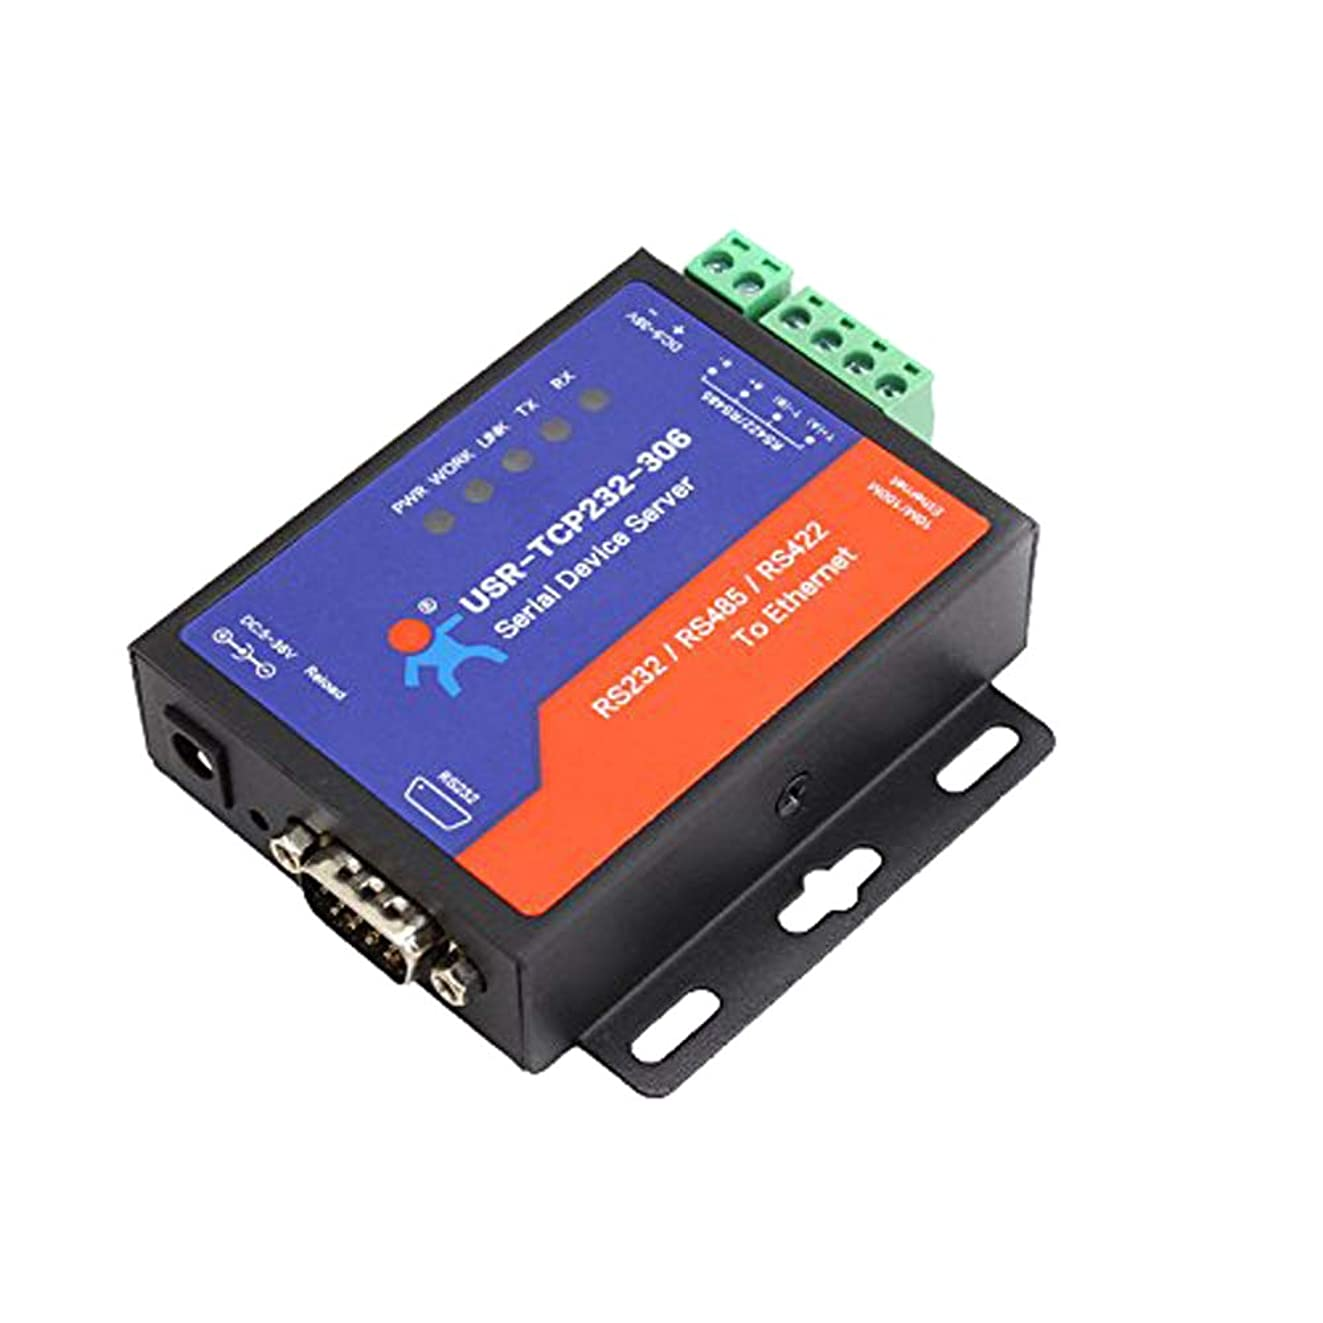 ?USR-TCP232-306 Serial to Ethernet Device Serial RS232/RS485/RS422 to Ethernet TCP/IP Server with DHCP